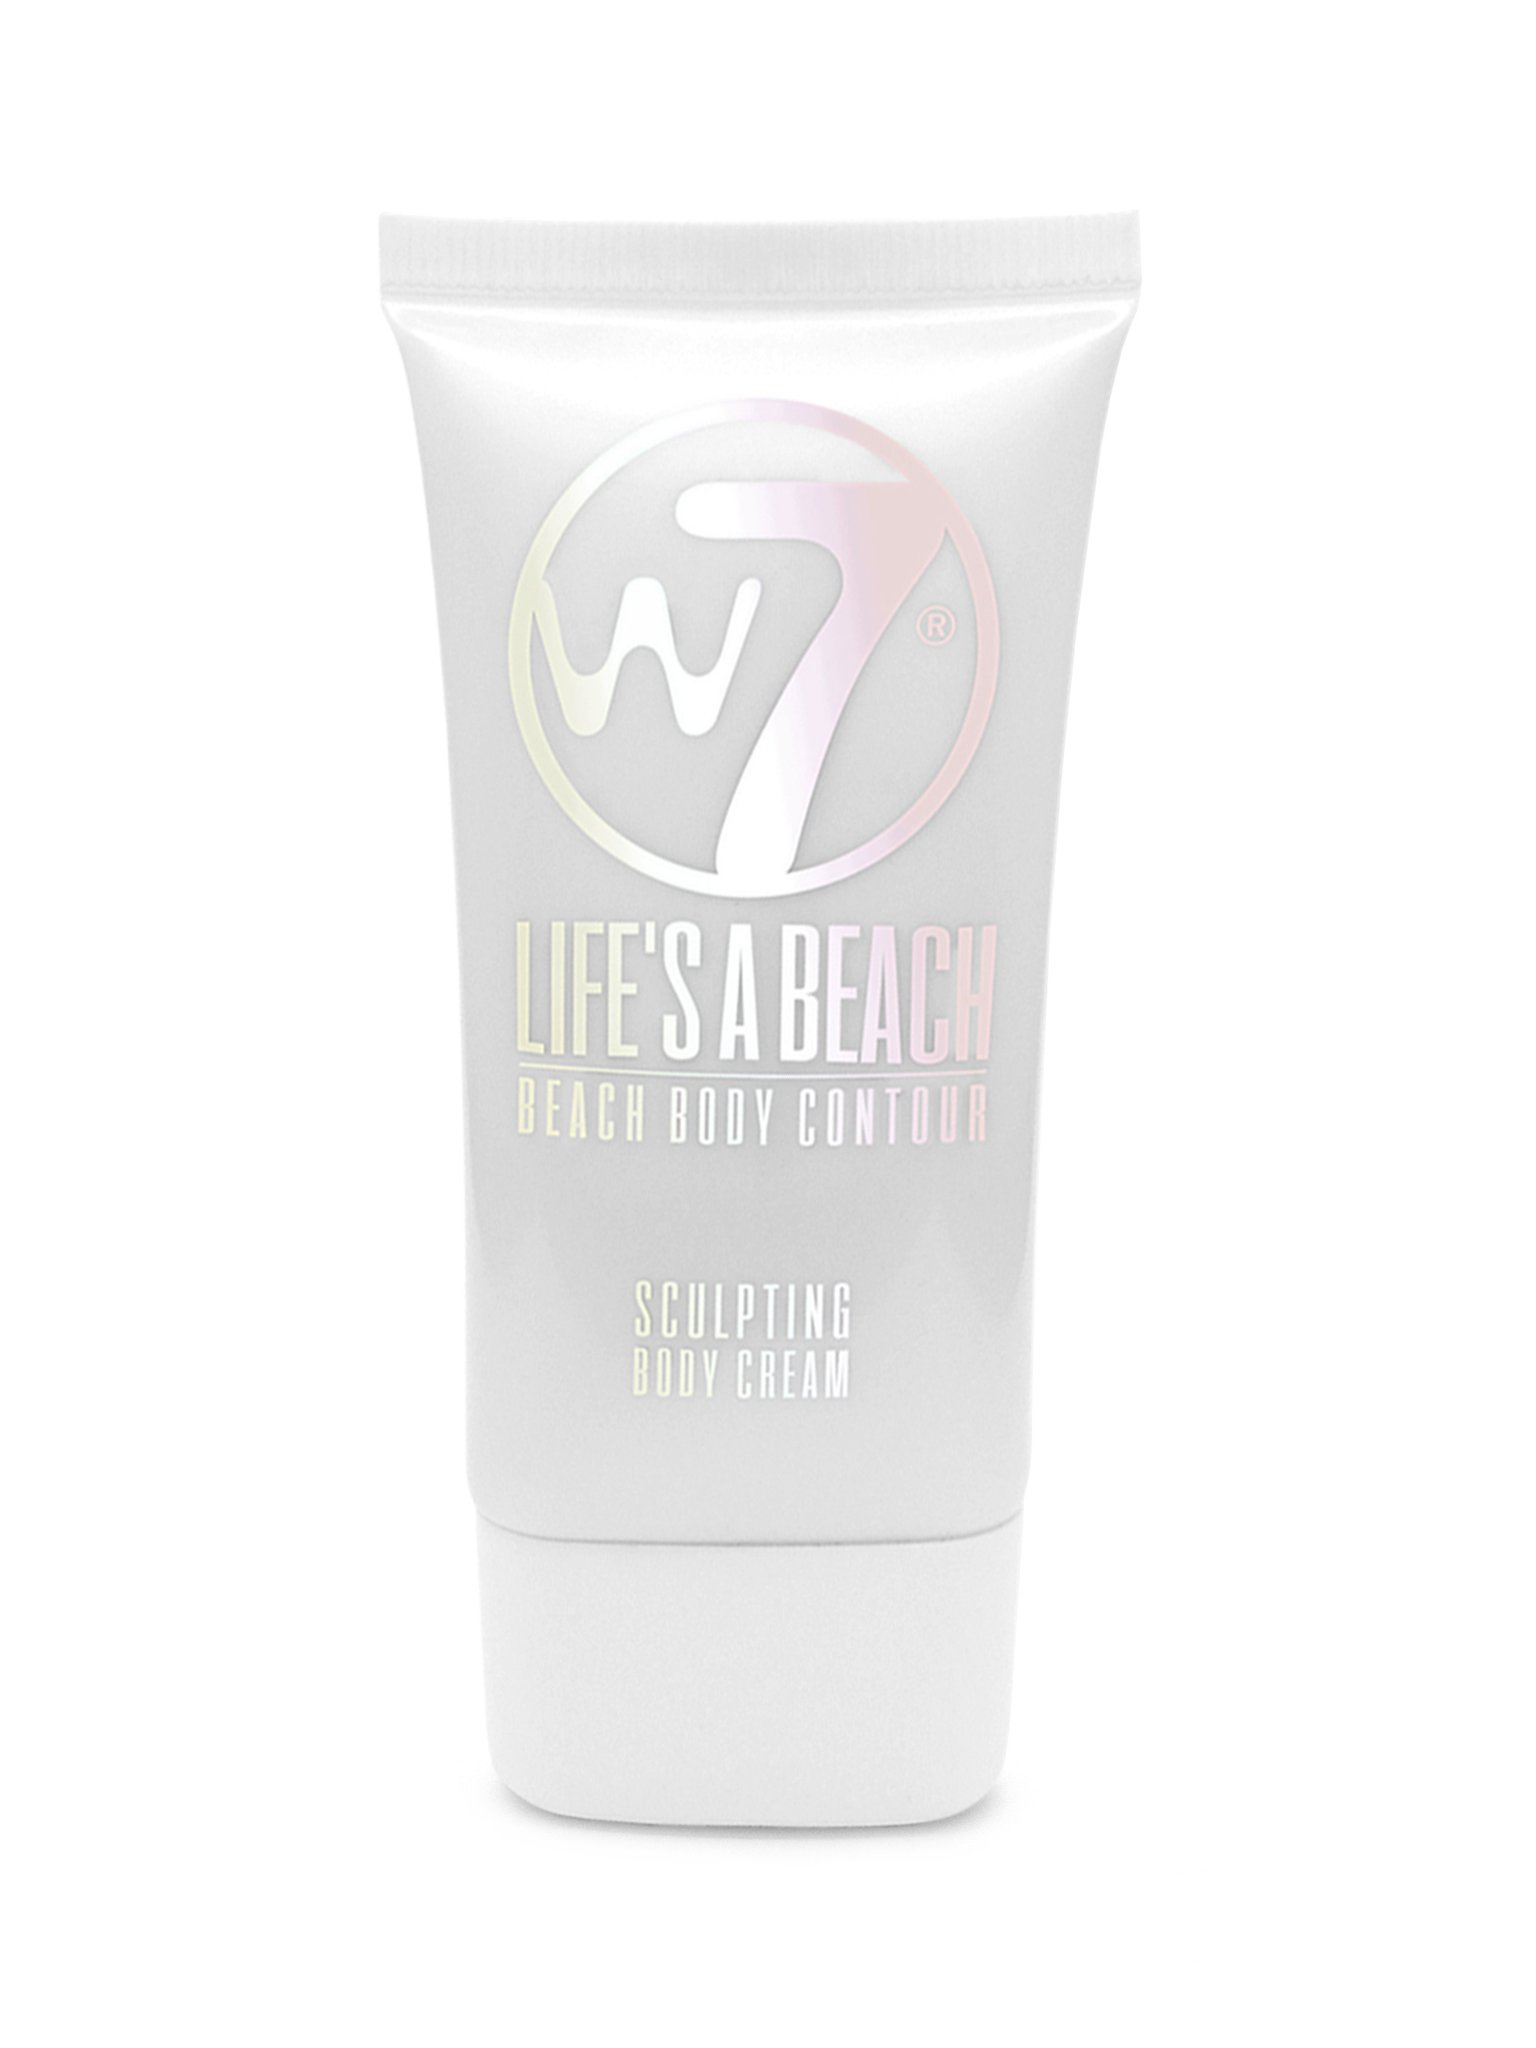 W7 Life's a Beach Body Sculpting Cream - Golden Goddess